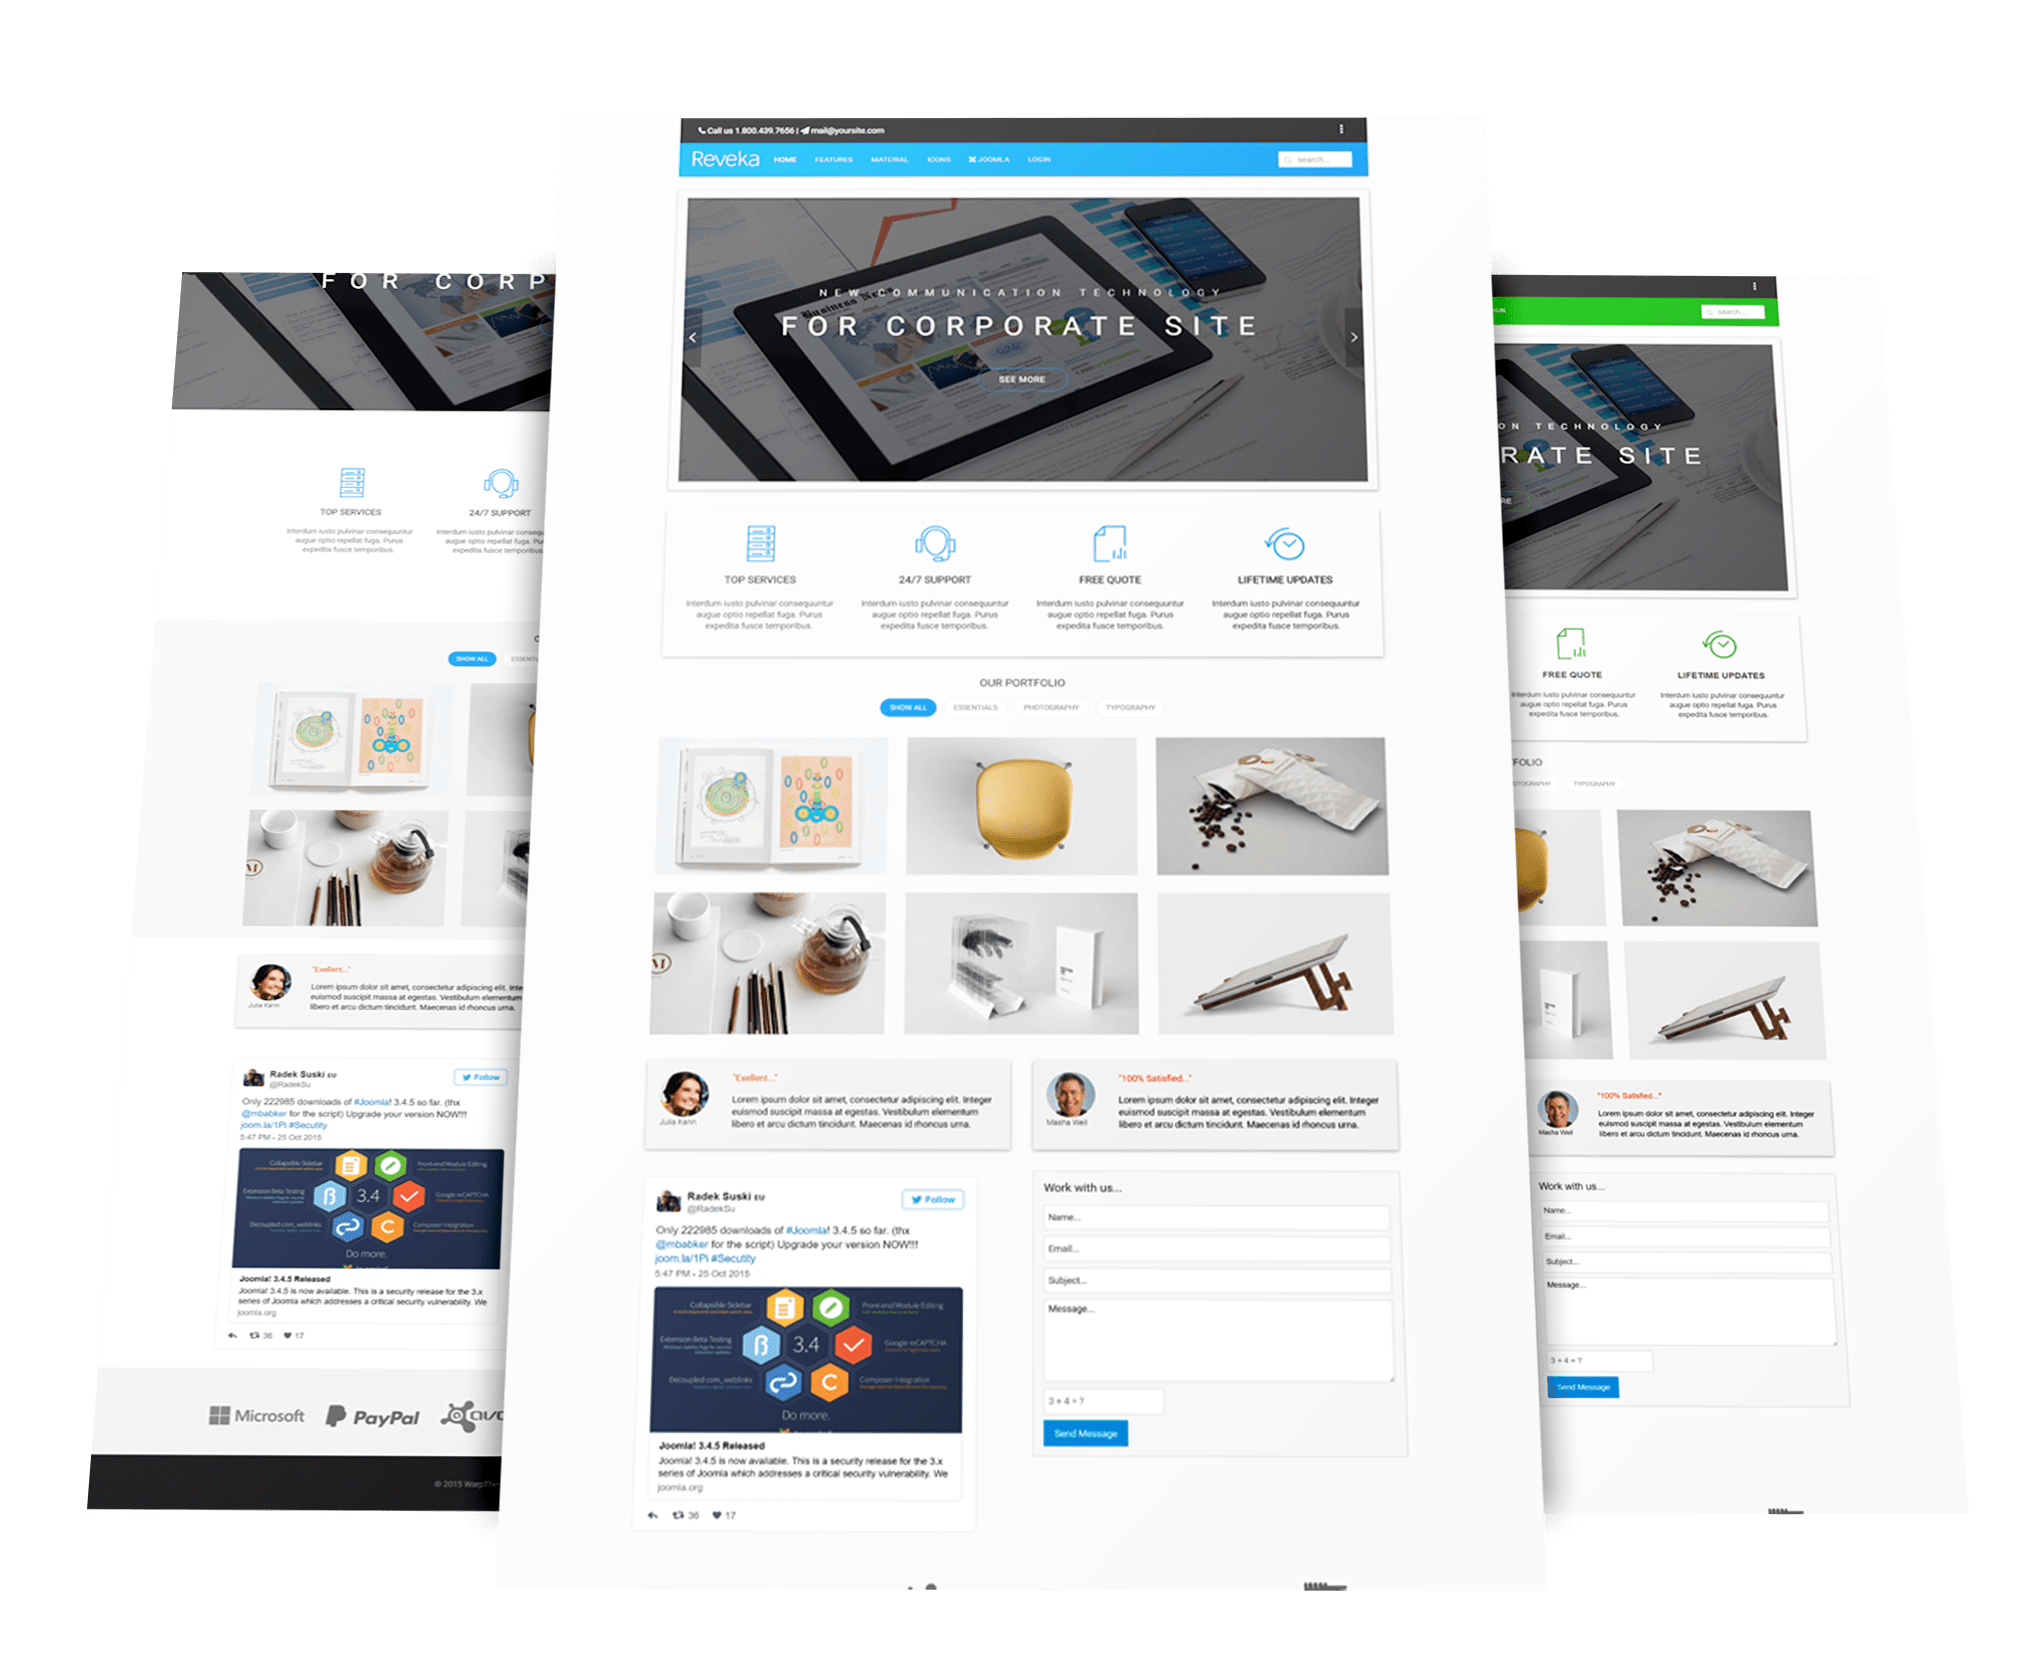 Joomla template creator open source 28 images for Joomla template builder software